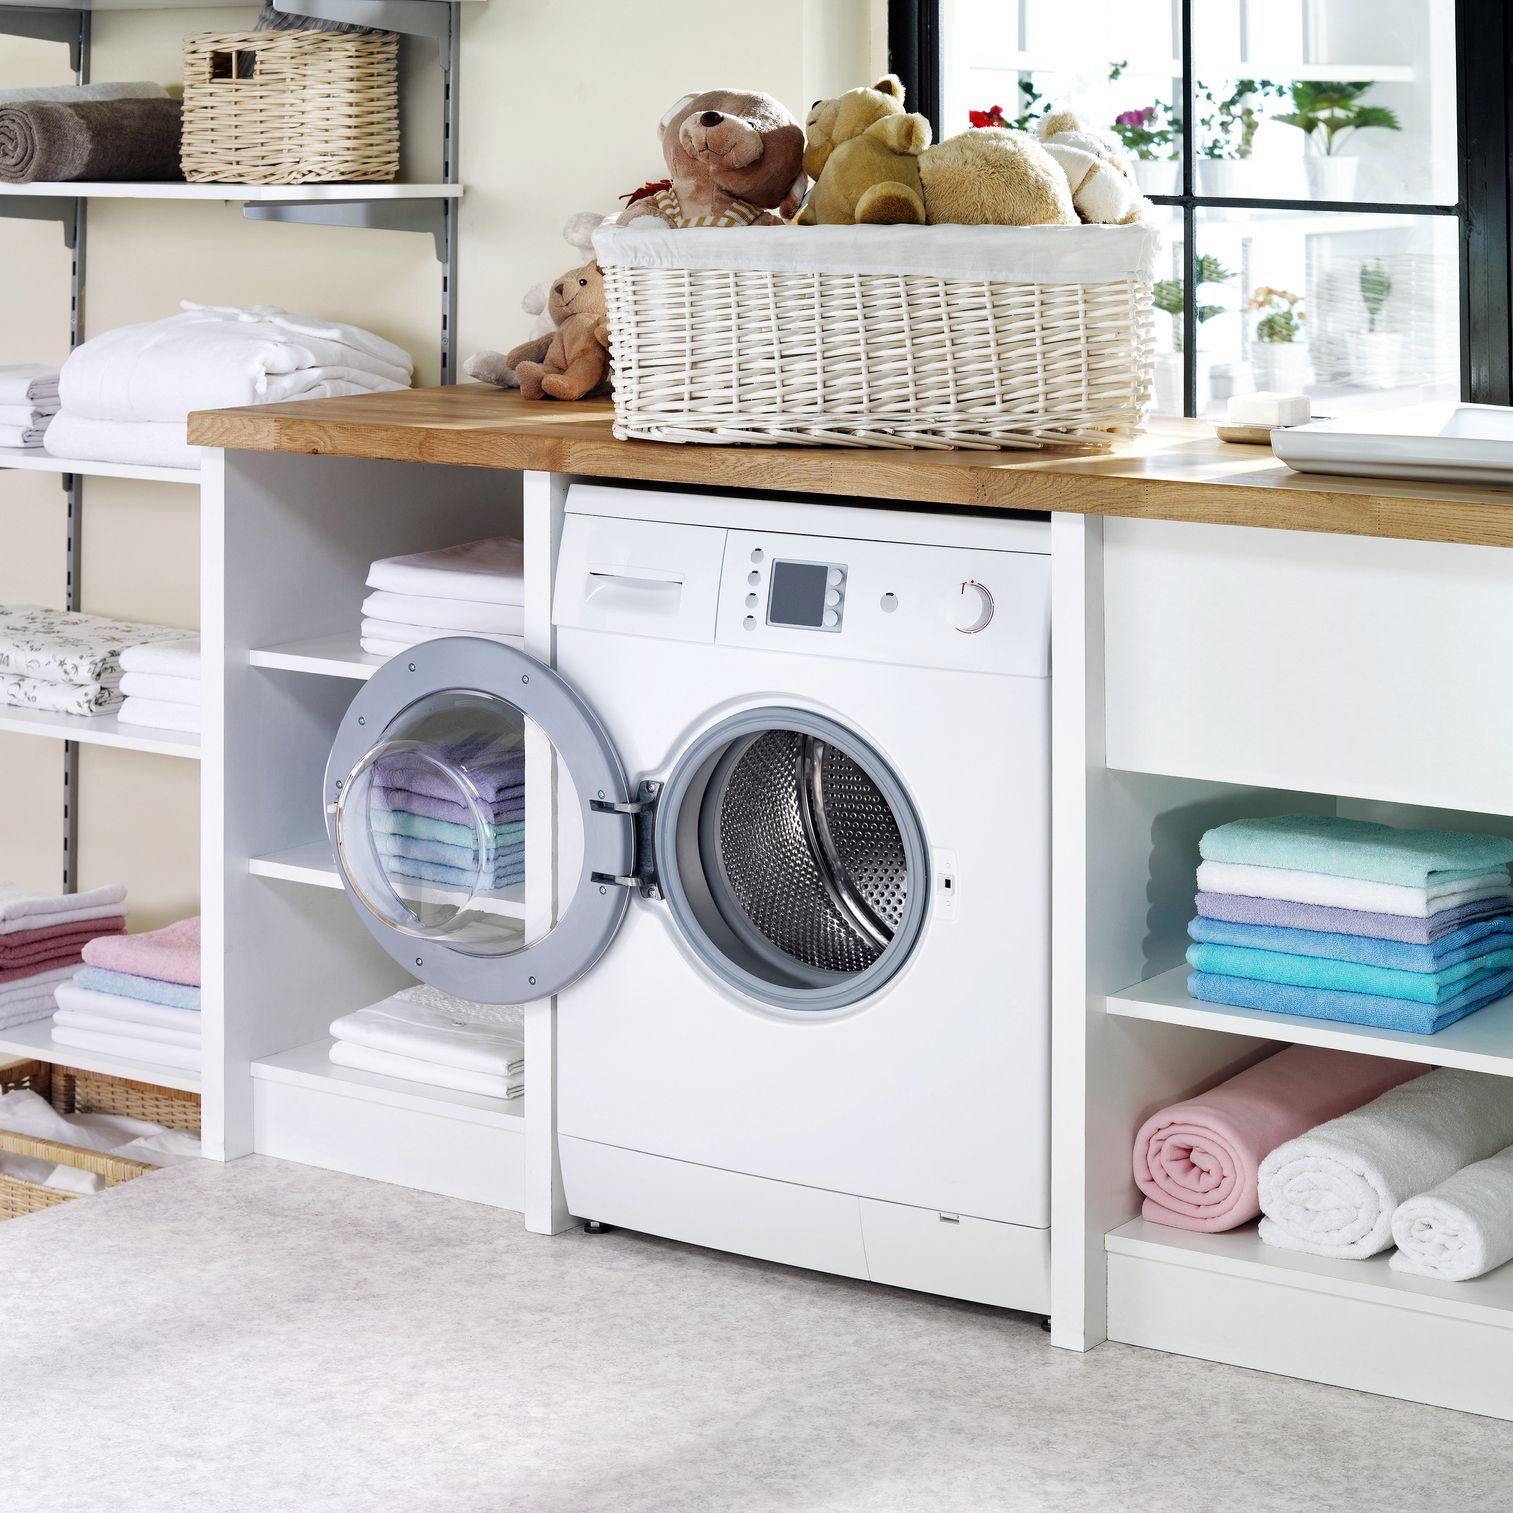 How Much Does It Cost to Add a Laundry Room?